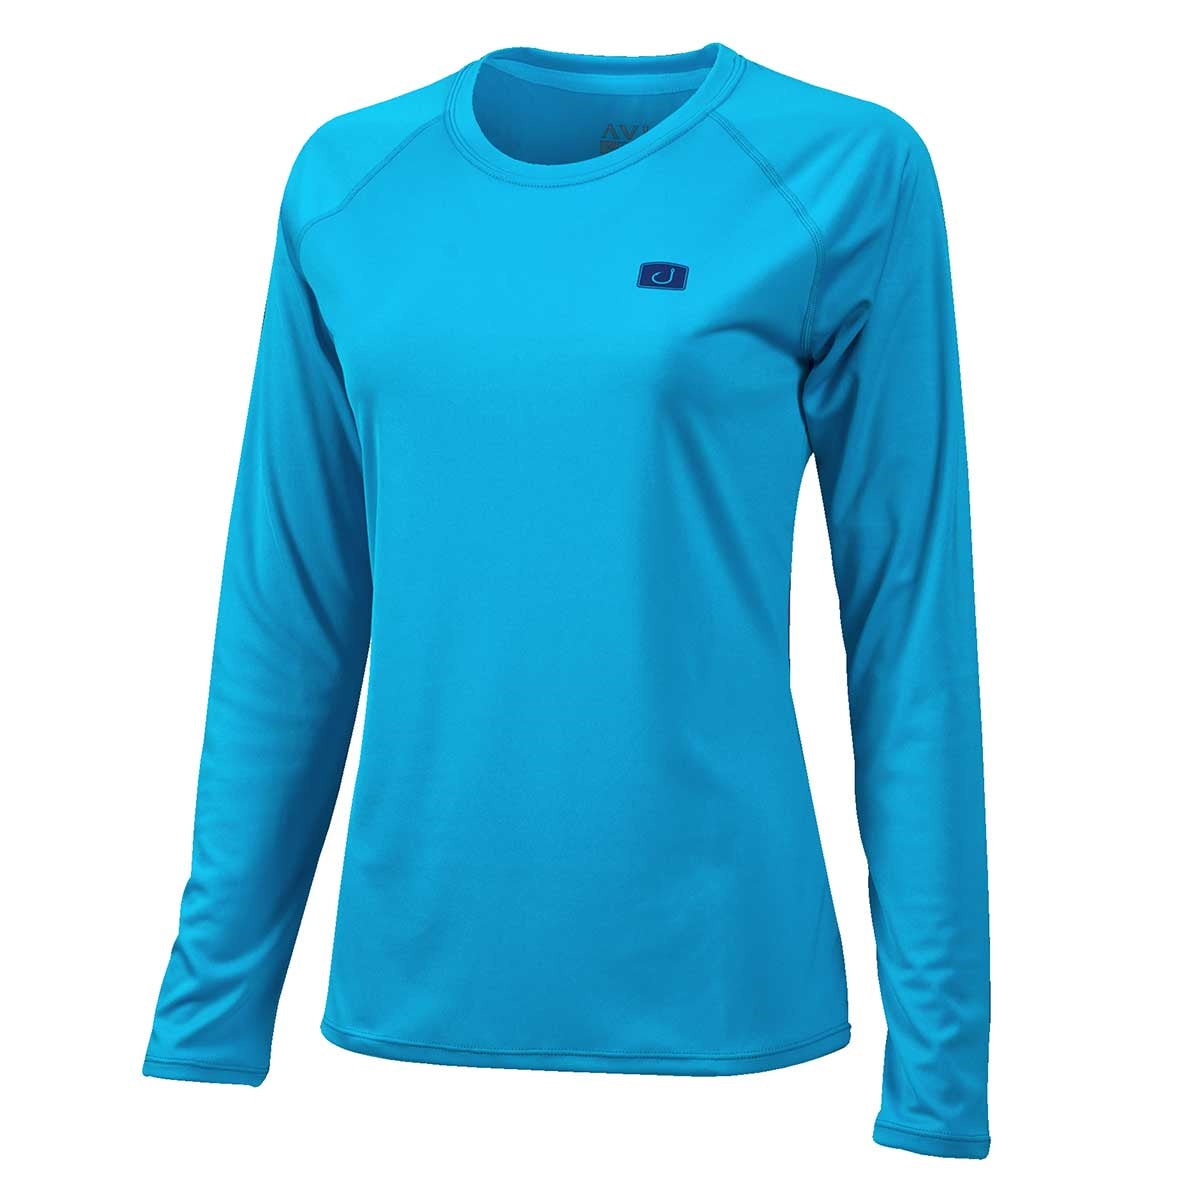 AVID - LADIES CORE AVIDRY LONGSLEEVE